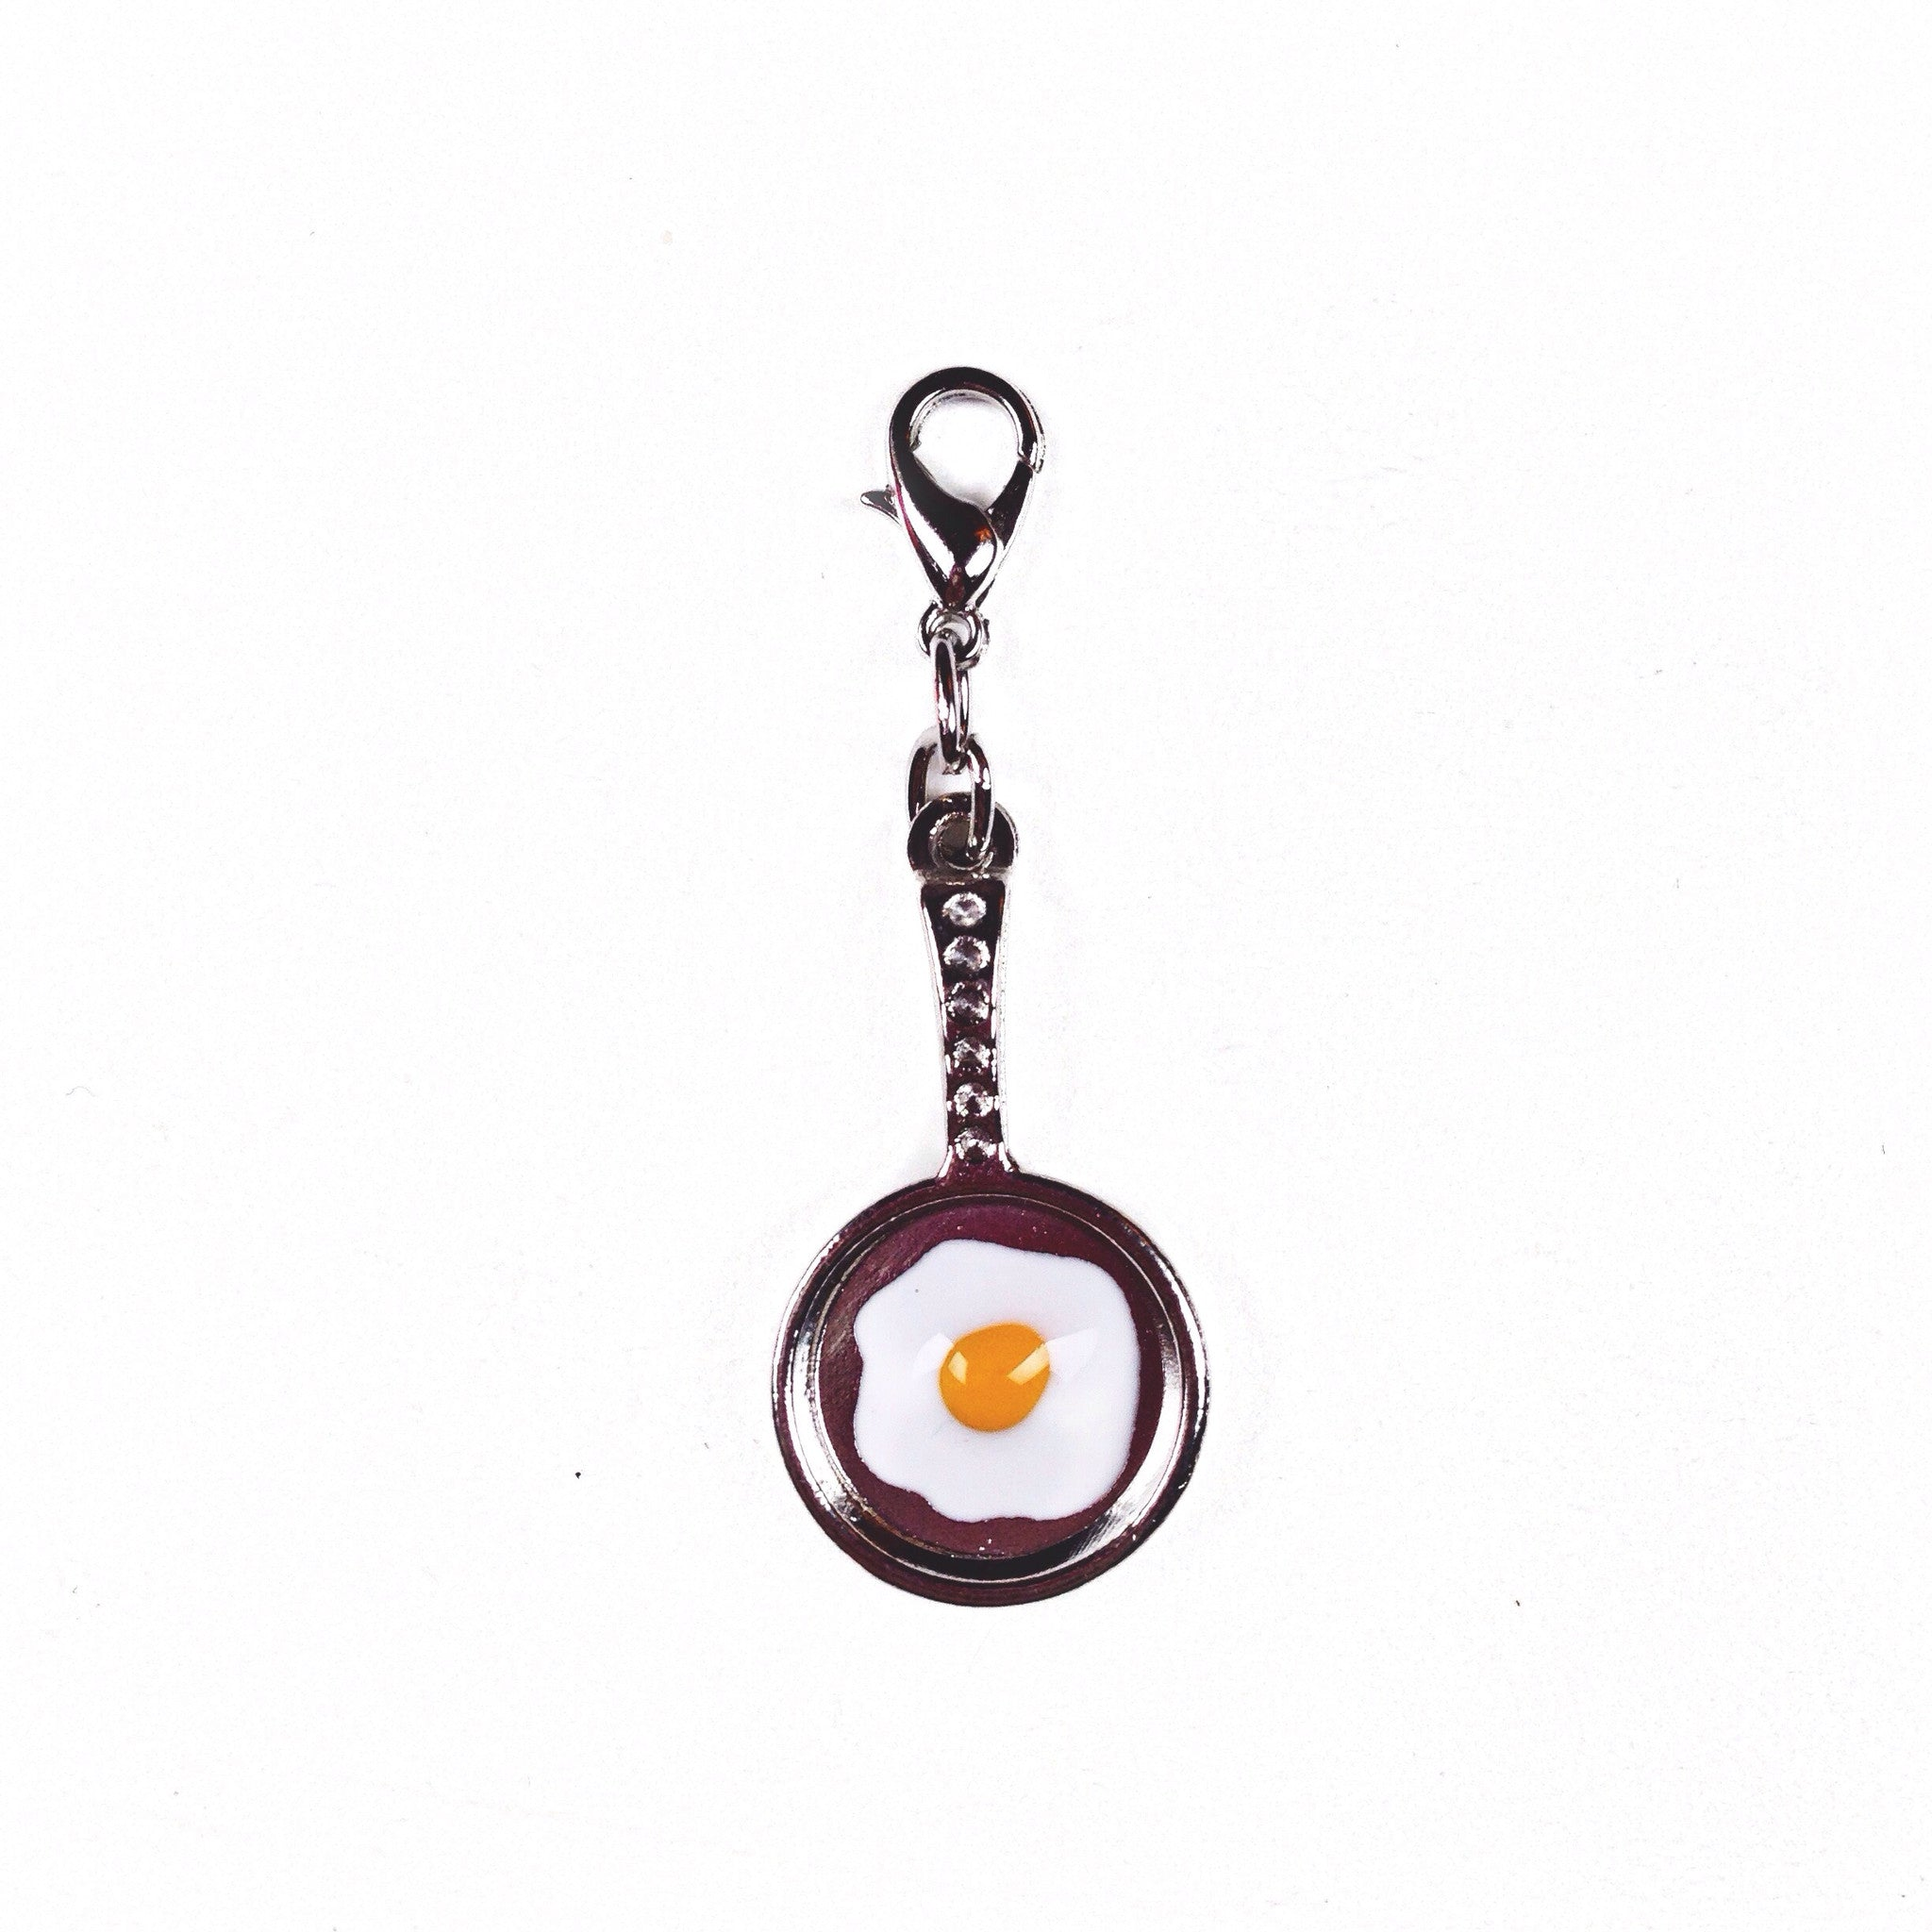 Fried egg in a frying pan charm perfect for travelers notebooks